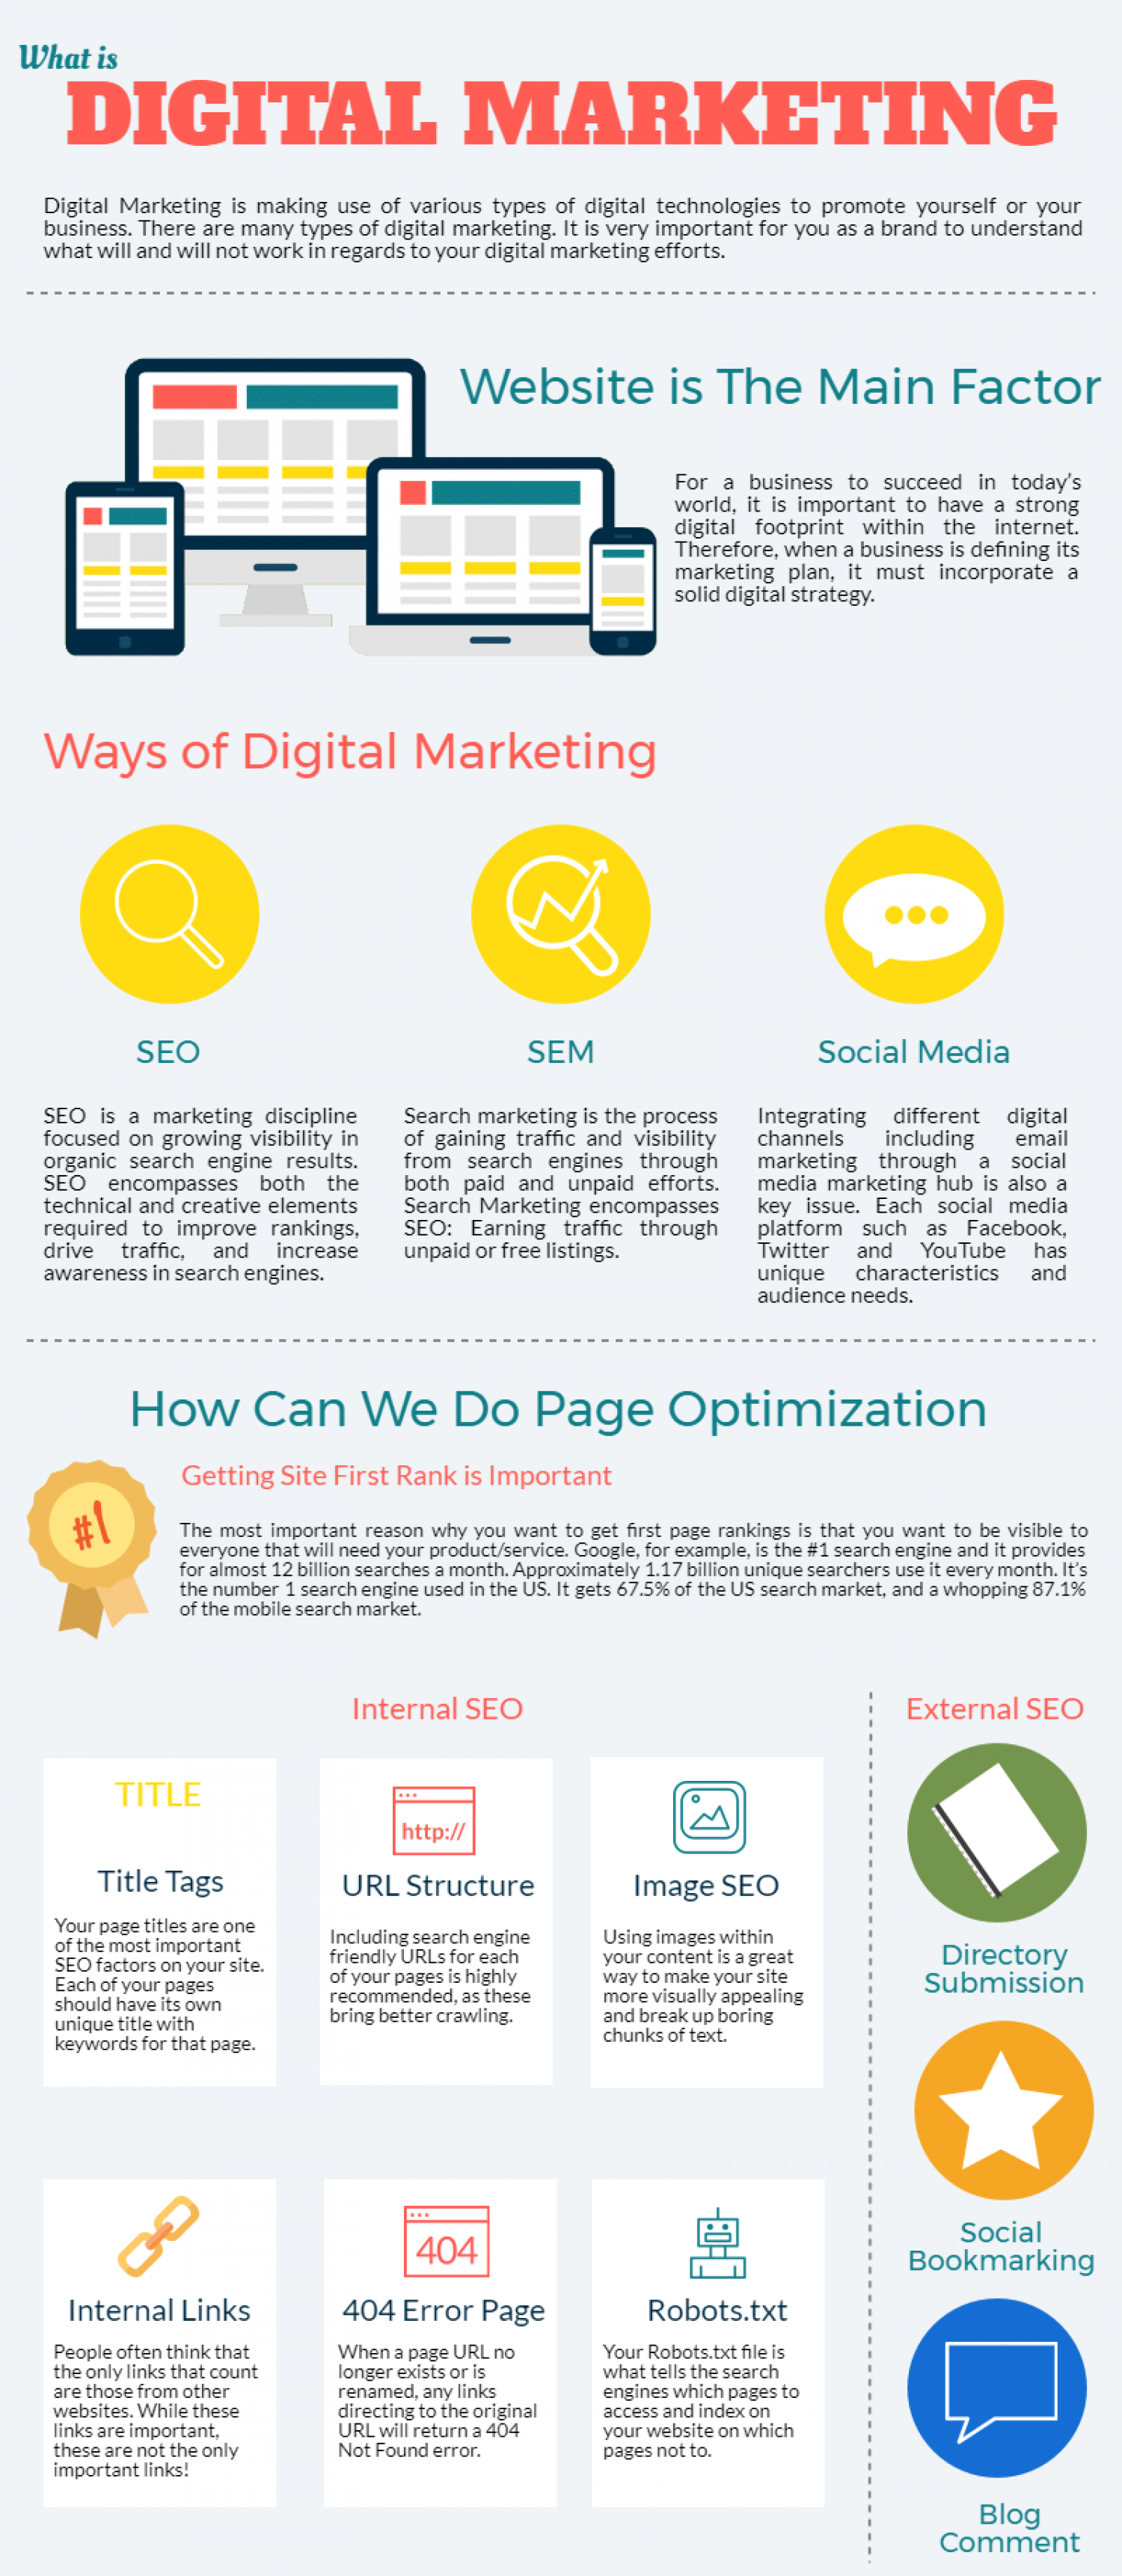 What Is Digital Marketing? A Guide to Marketing in Today's Digital World Infographic